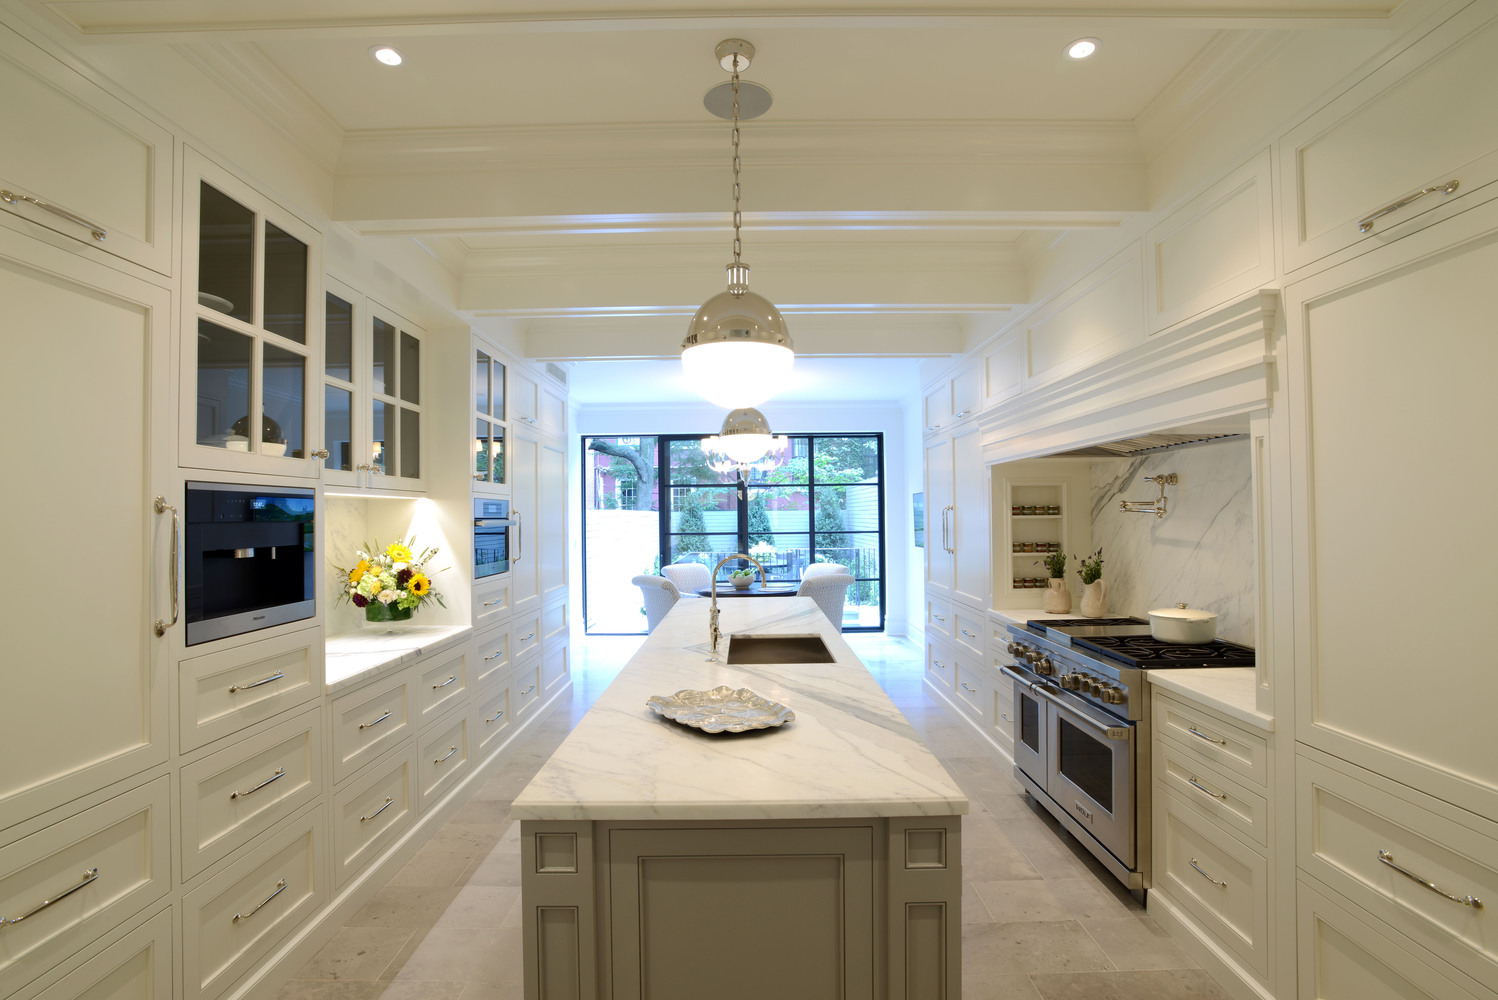 gallery of the world s most prominent kitchen design contest is now